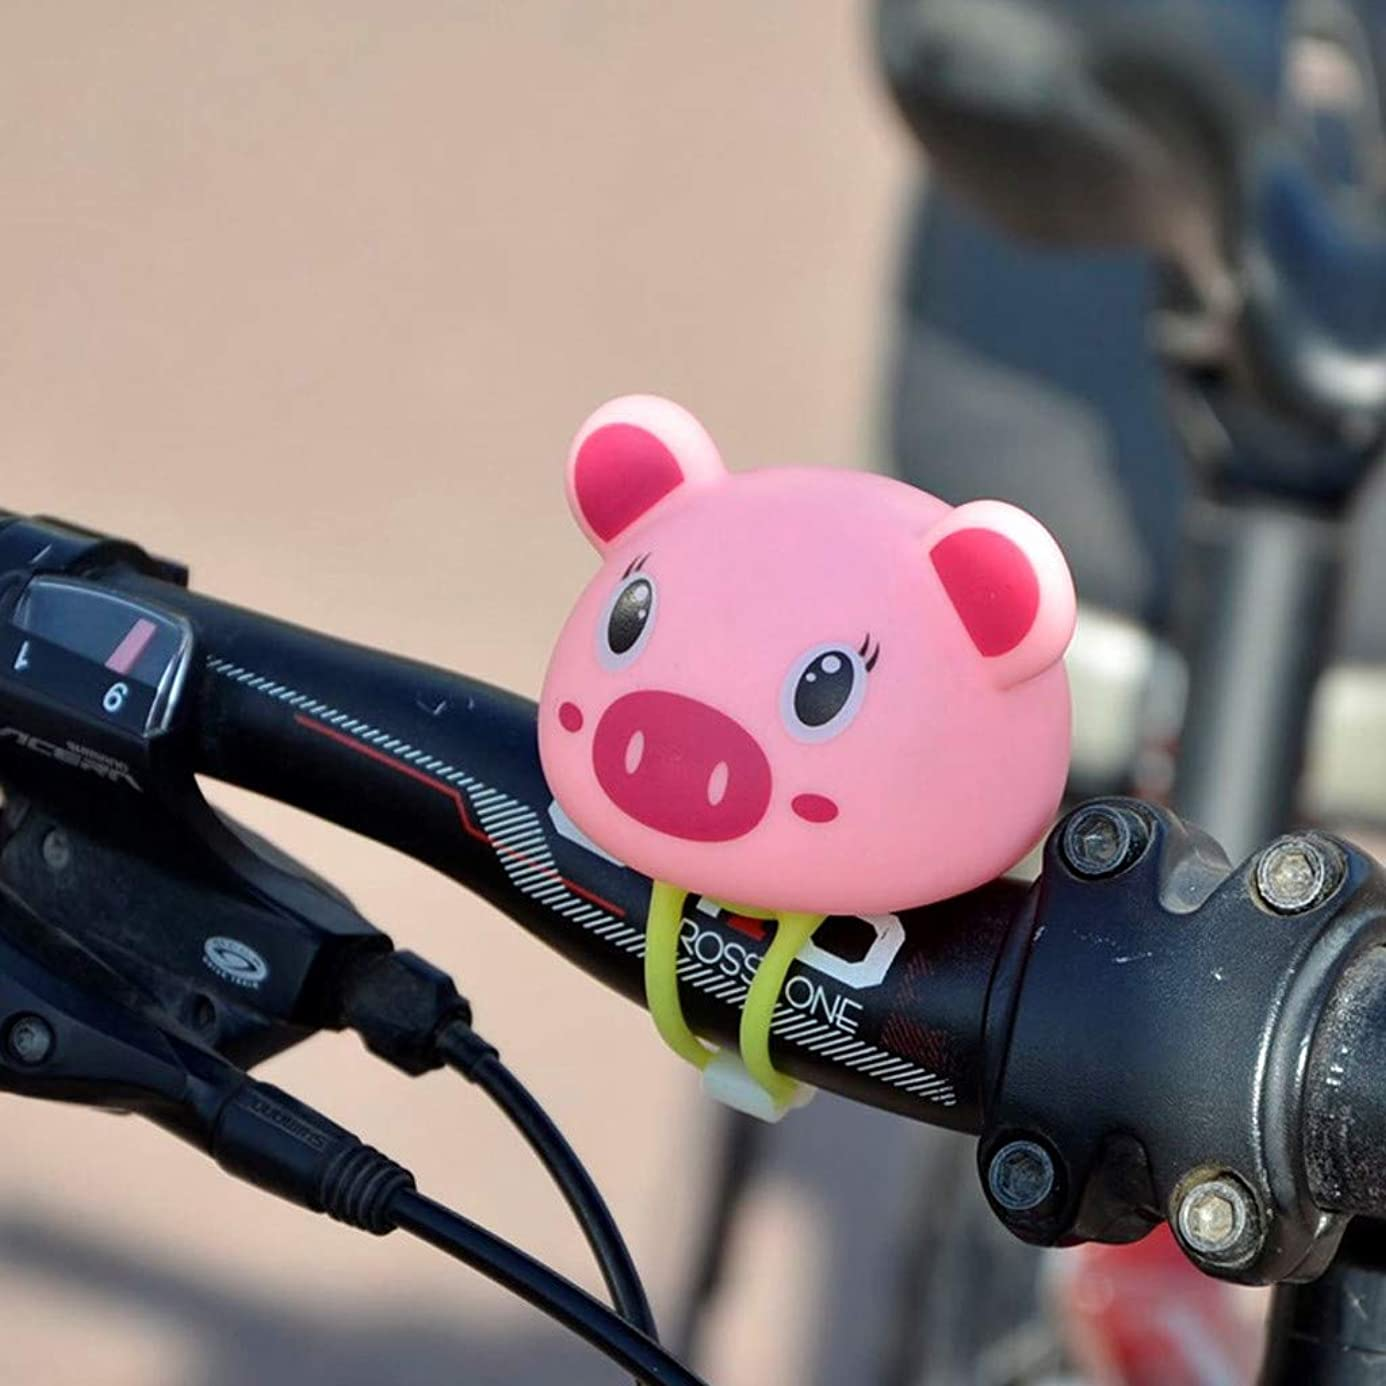 Aobiny Bike Accessories,Bells Loud Voice Cartoon Pig Monkey Model Handlebar Headlight Shining Bicycle Accessory Outdoor Sport Cycling